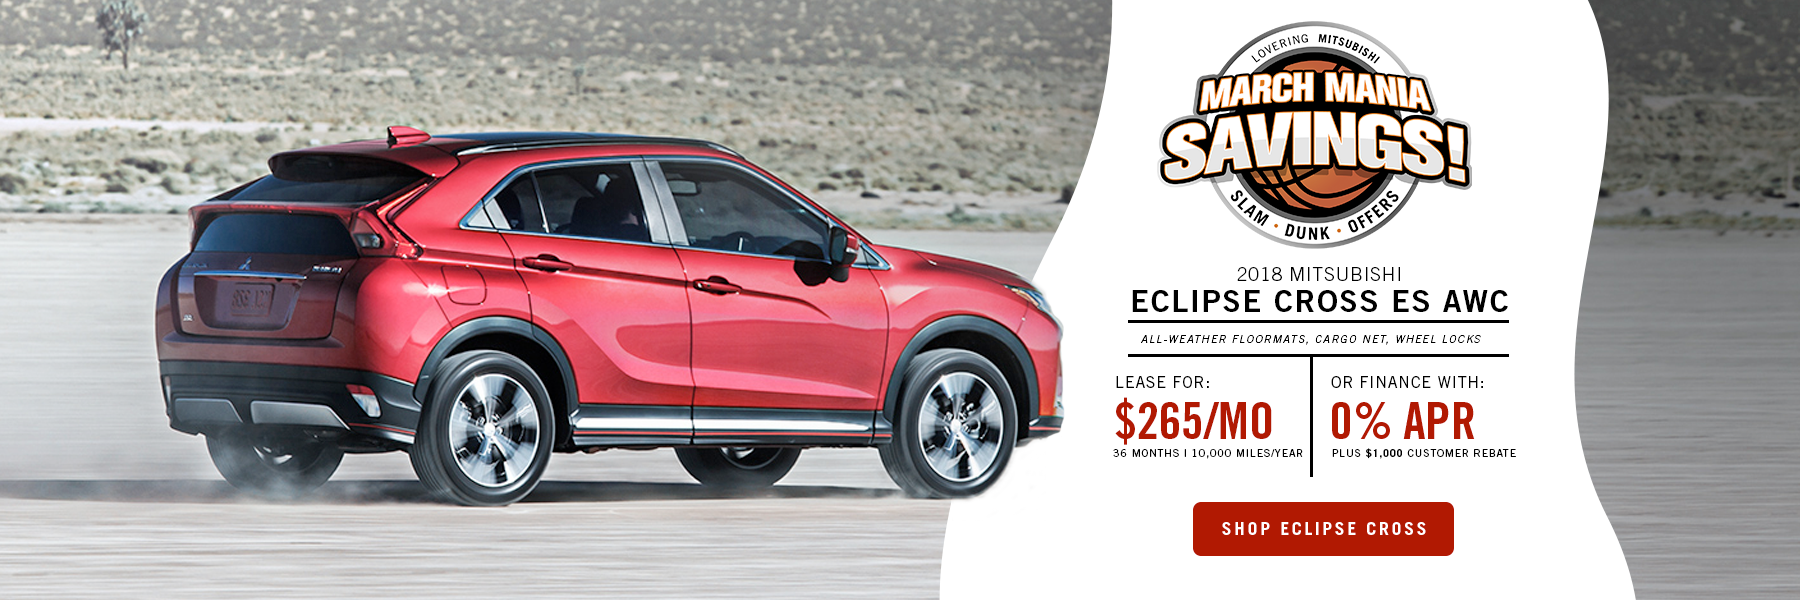 Eclipse Cross Special Offer Concord, NH